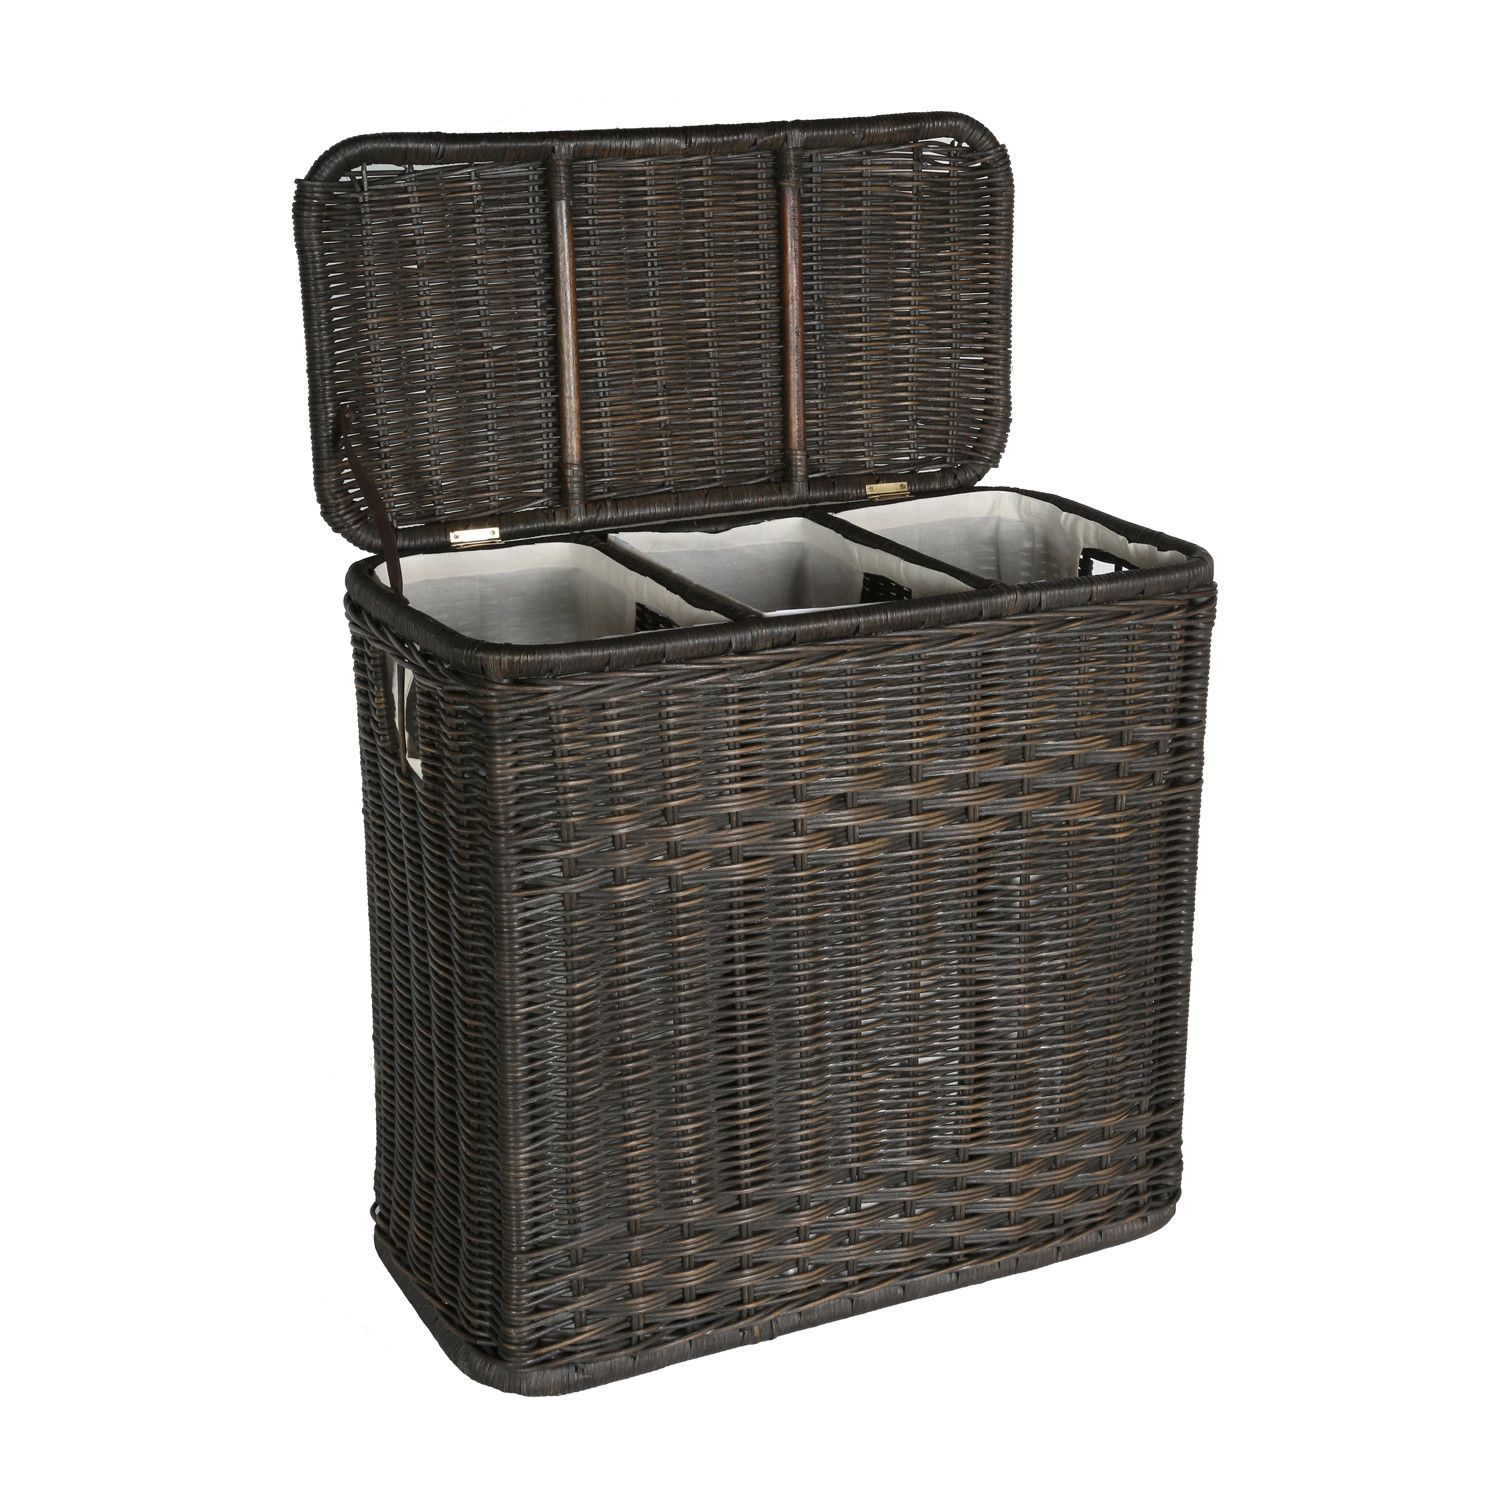 3 Compartment Wicker Laundry Hamper From The Basket Lady Wicker Laundry Hamper Laundry Hamper Hamper Wicker laundry hamper with liner